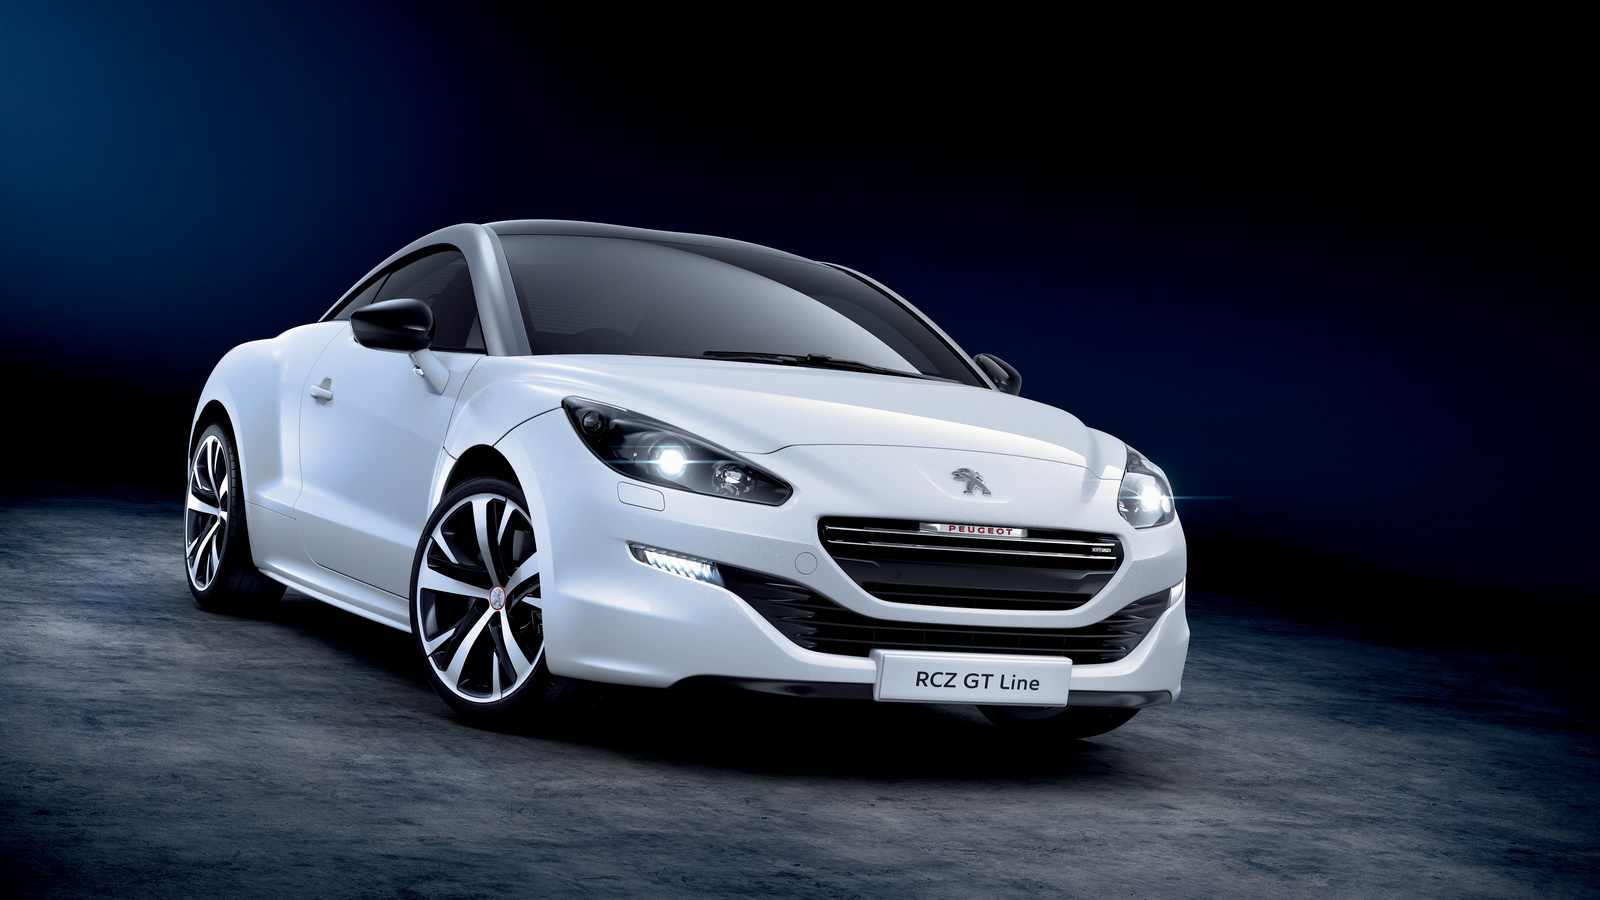 peugeot boss says no to a successor for the rcz coupe carscoops. Black Bedroom Furniture Sets. Home Design Ideas